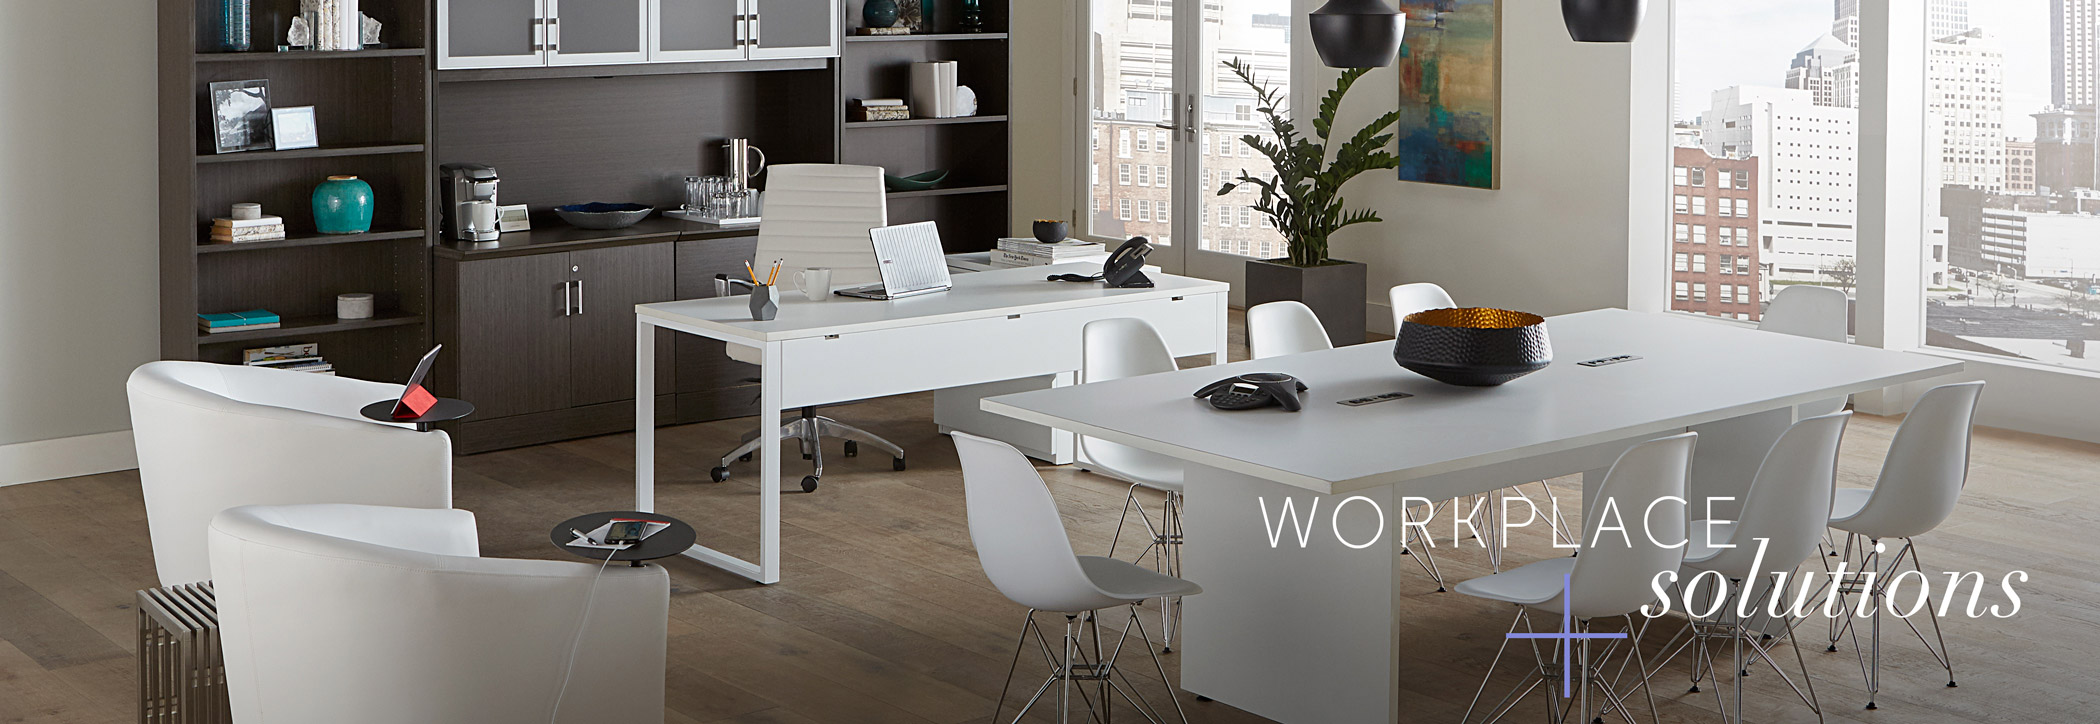 Rented furniture from AFR in office space with words 'workplace solutions'